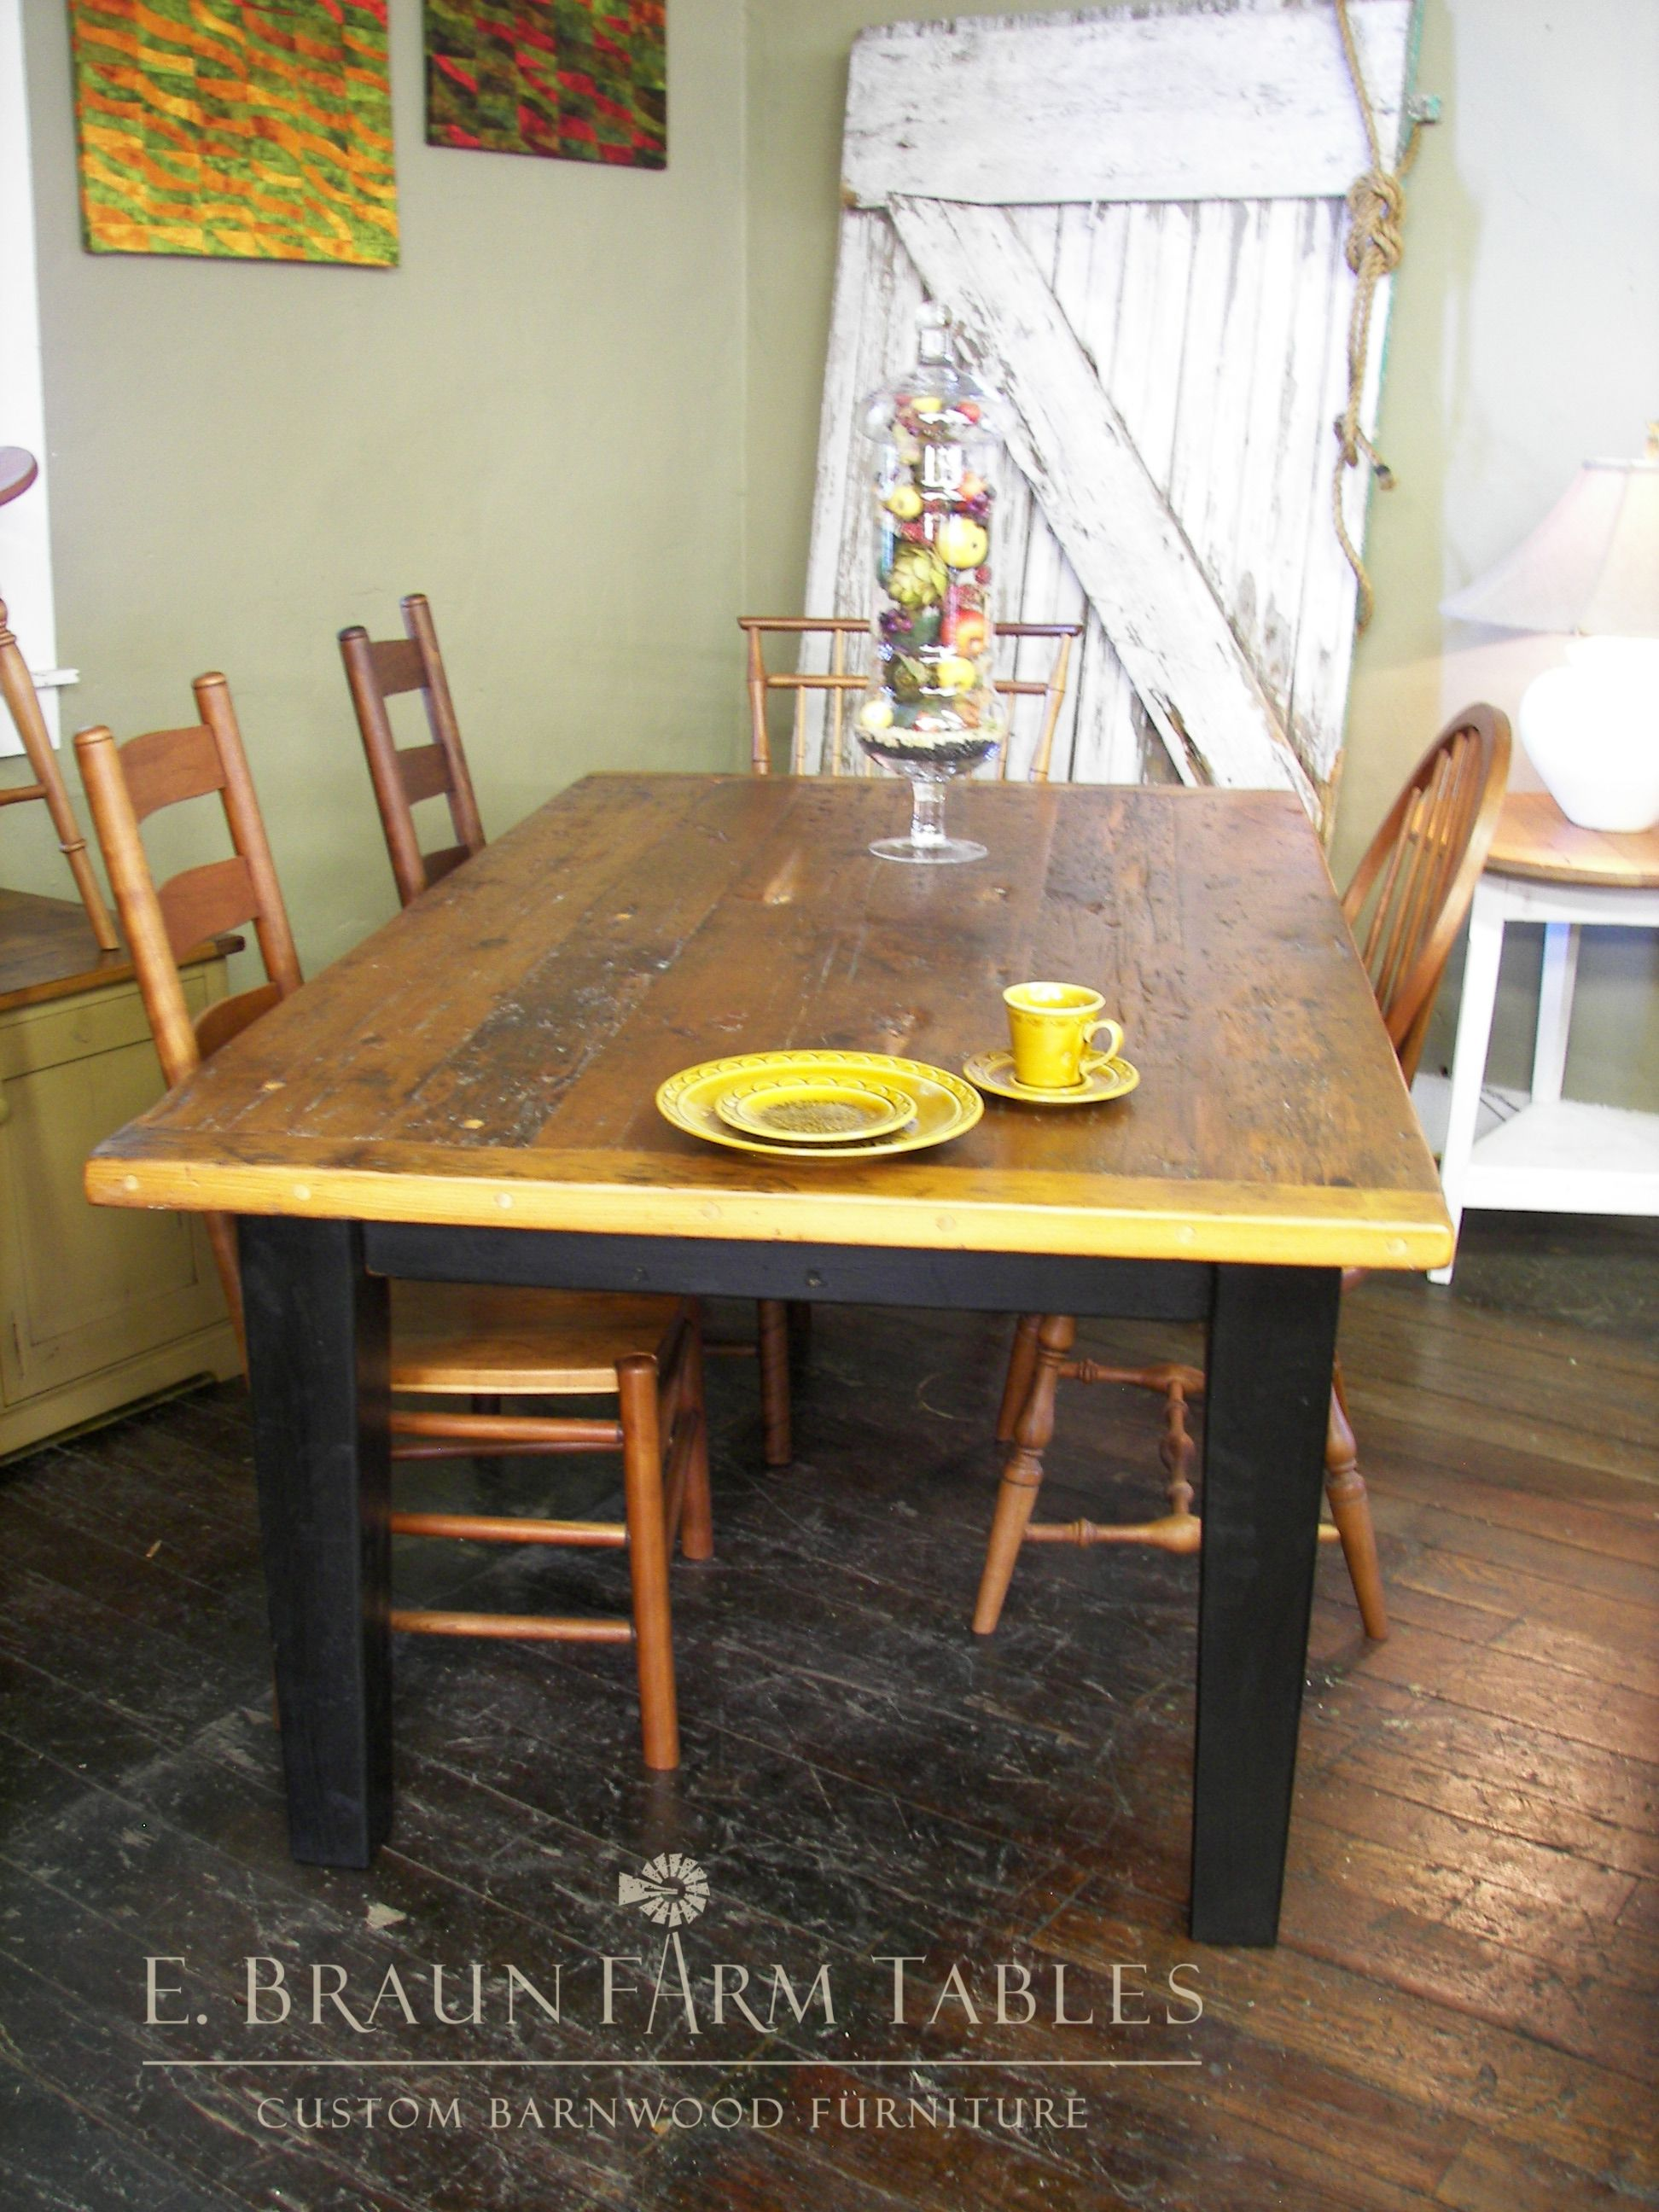 Superieur High Character White Pine Farm Table With Tapered Legs   E. Braun Farm  Tables And Furniture   We Use Wood From Dismantled Barns And Log Homes  Dating From ...